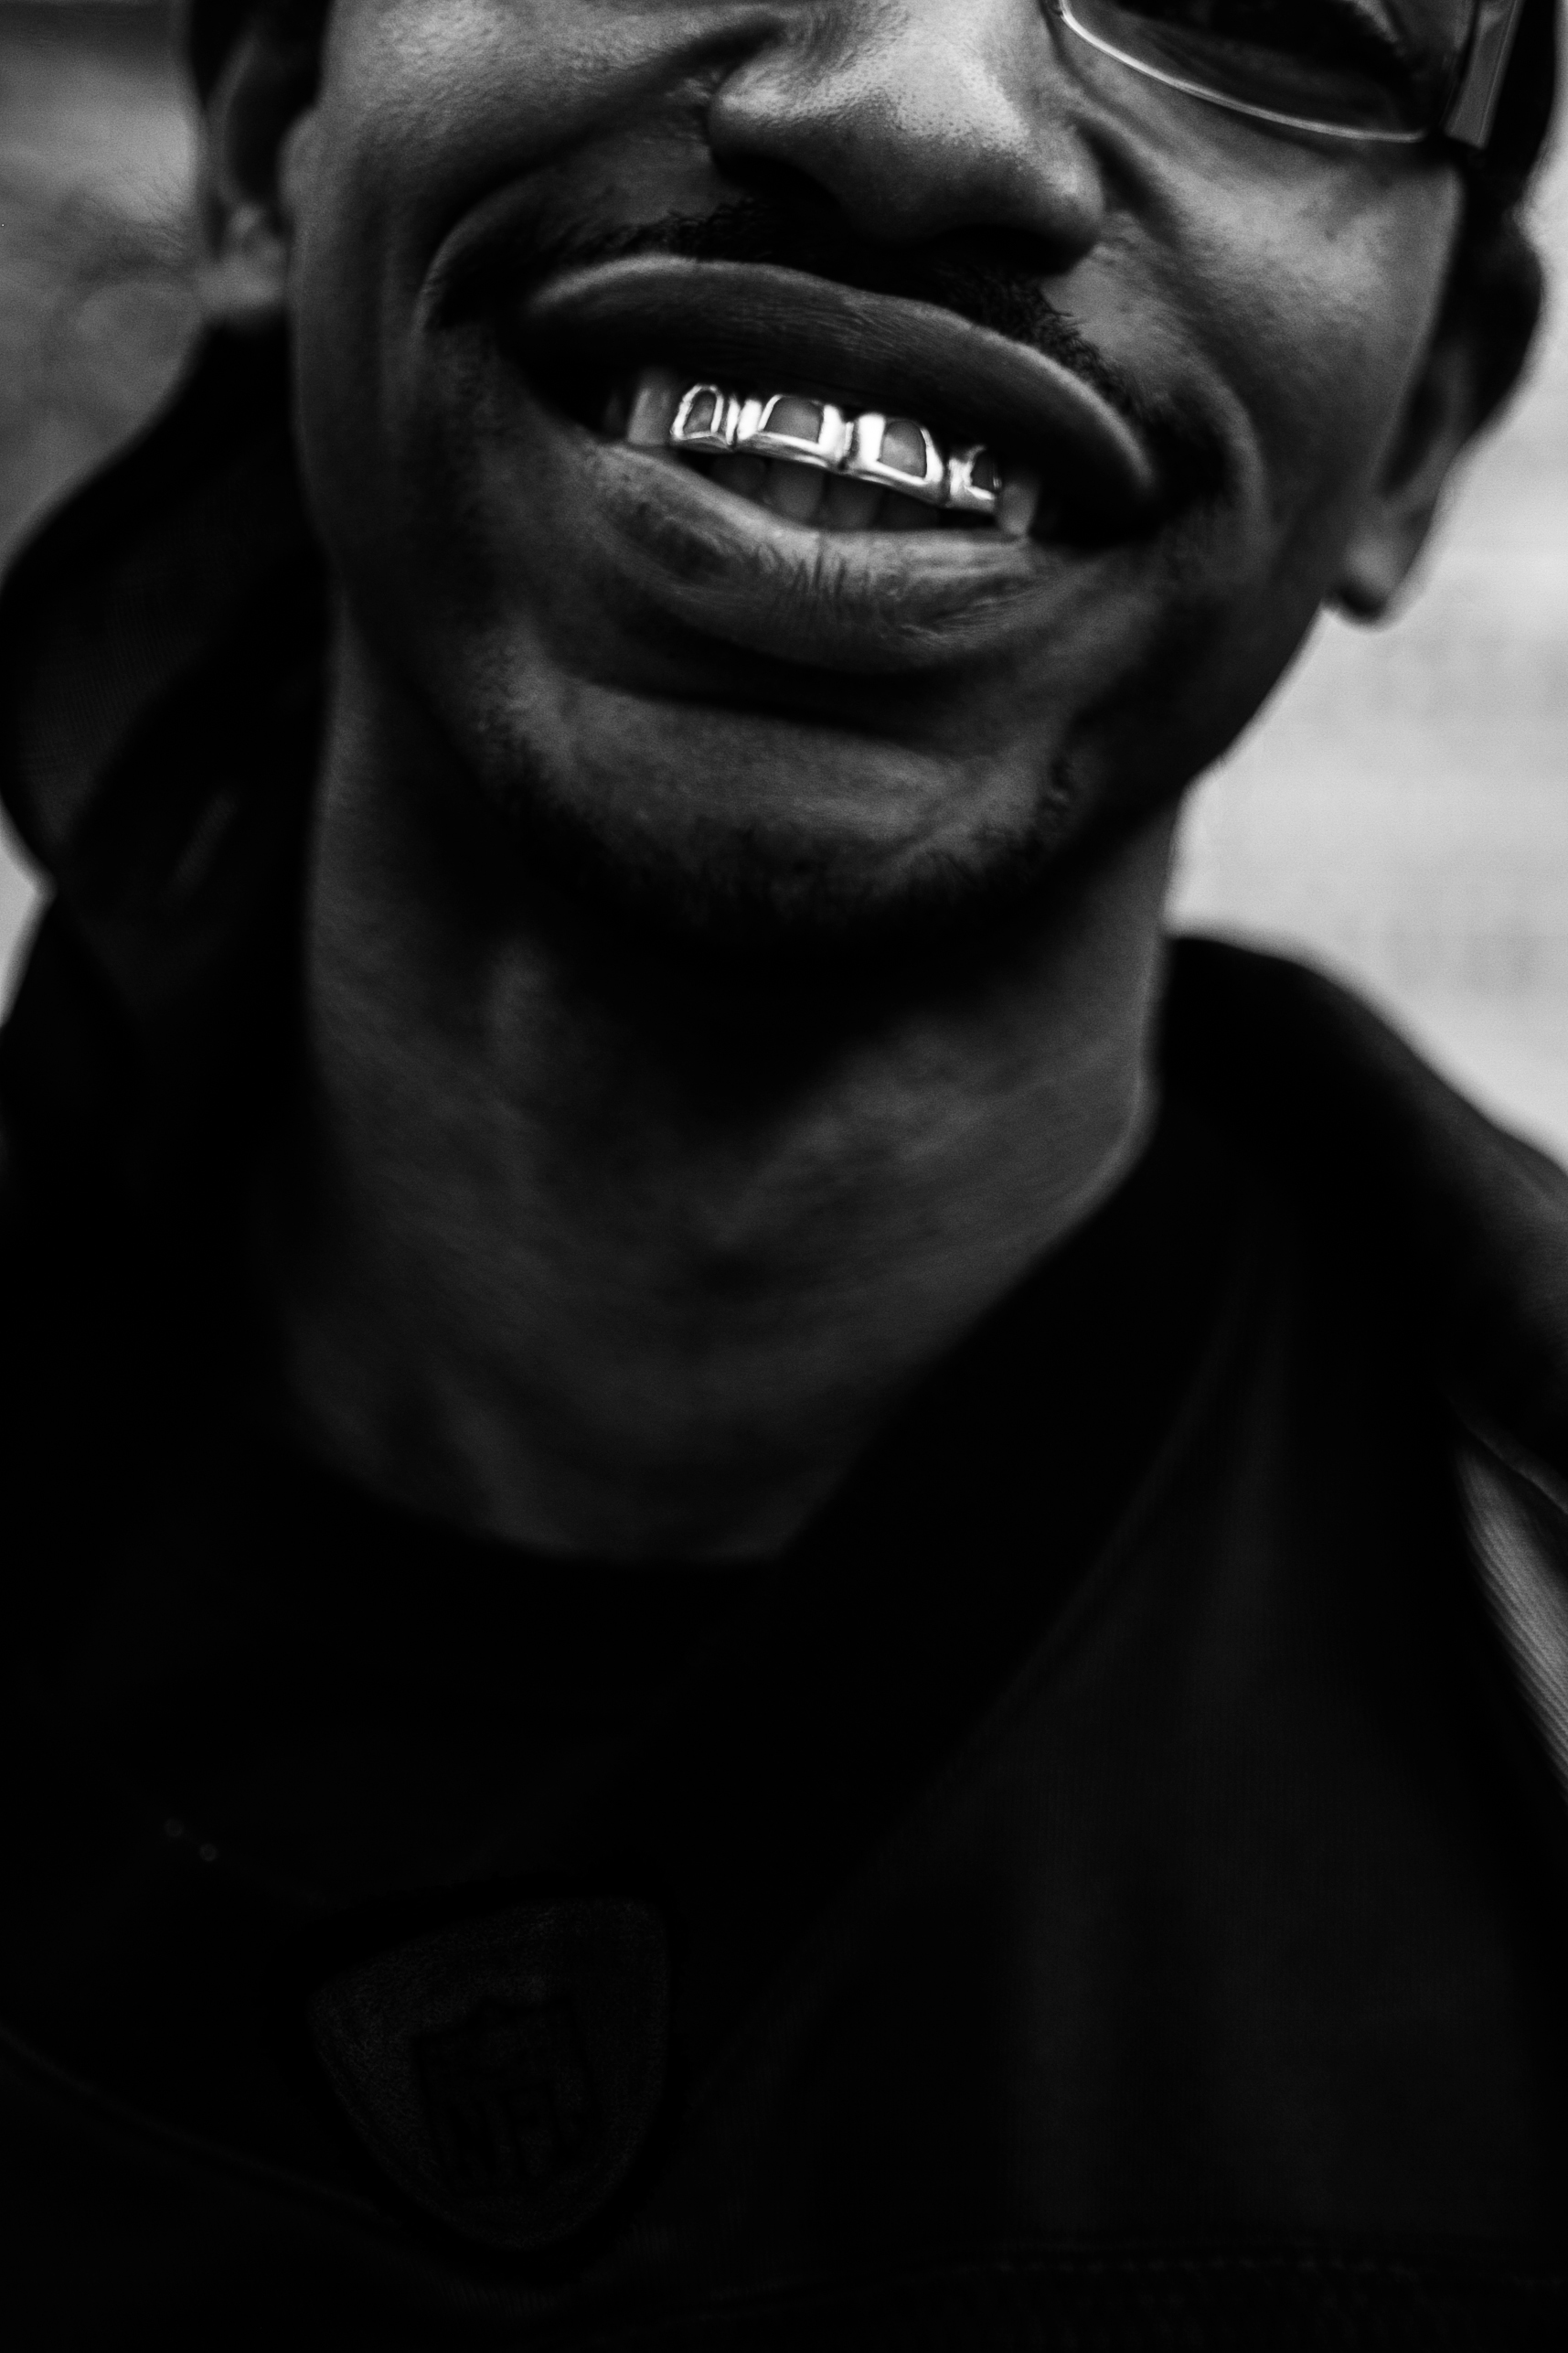 SMILE - ORGNZD VISUALS BY LEXANDER BRYANT